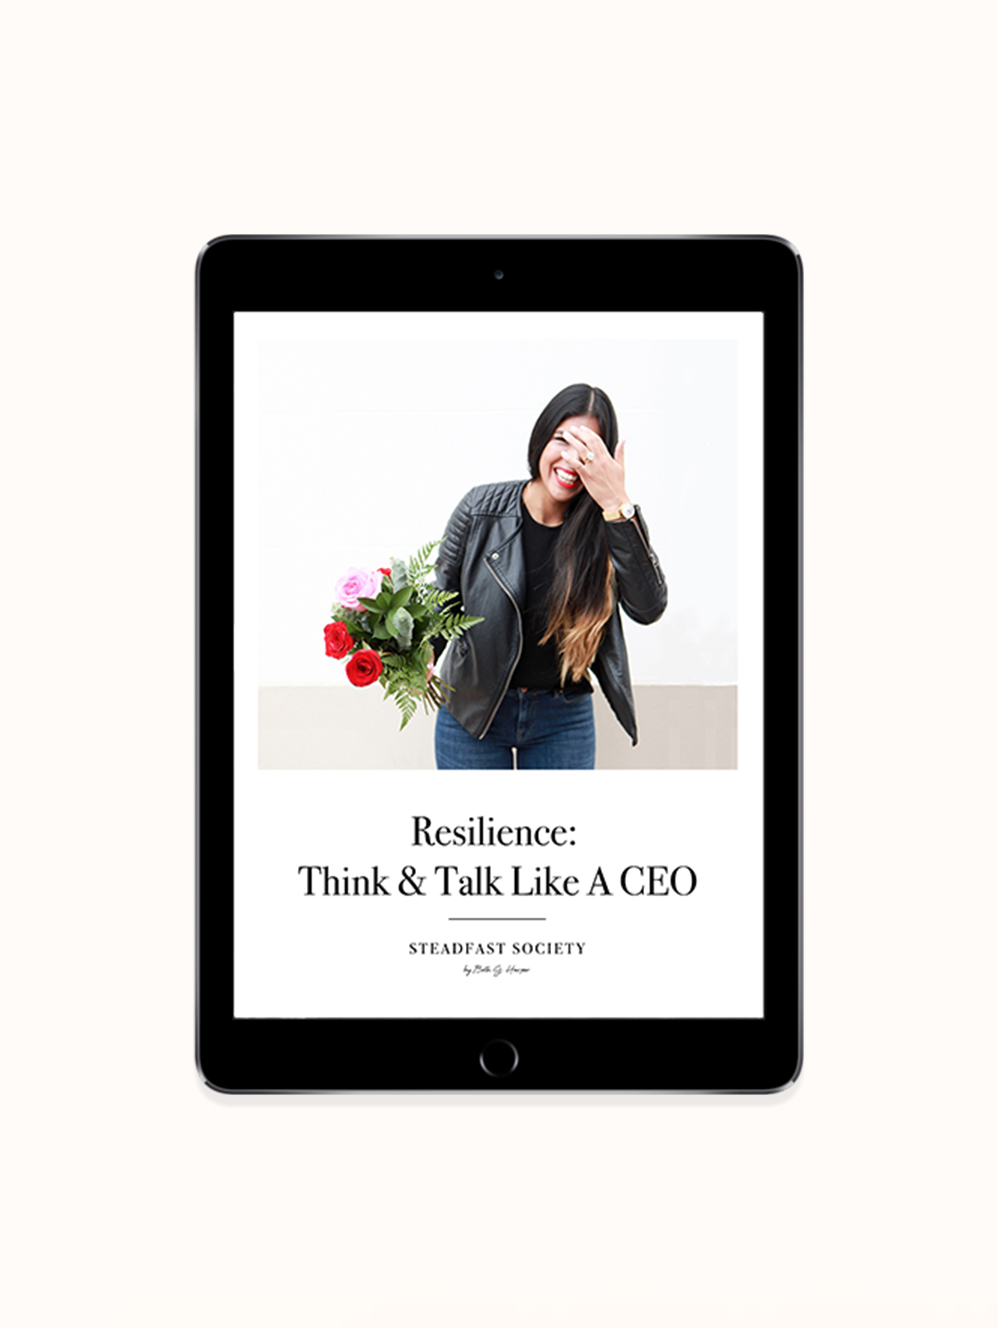 Copy of <p><strong>Resilience: Think & Talk Like A CEO</strong>$59/Mo. or $147 in Full<a href=resilience>More →</a></p>